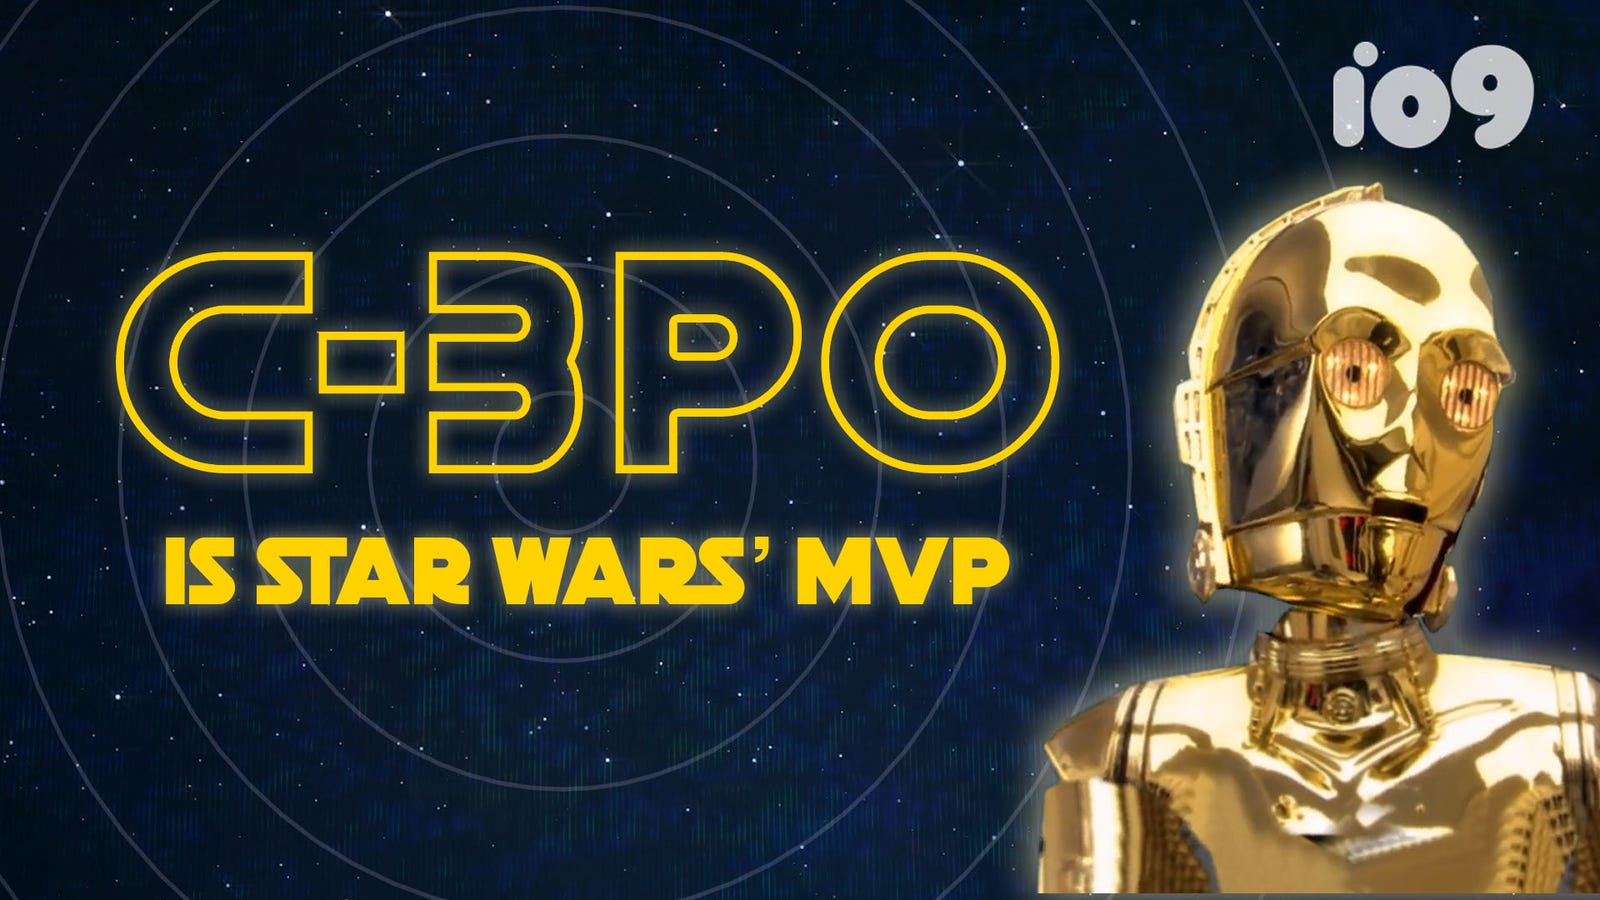 This Theory Shows Why C-3PO Is the Secret Hero of Star Wars